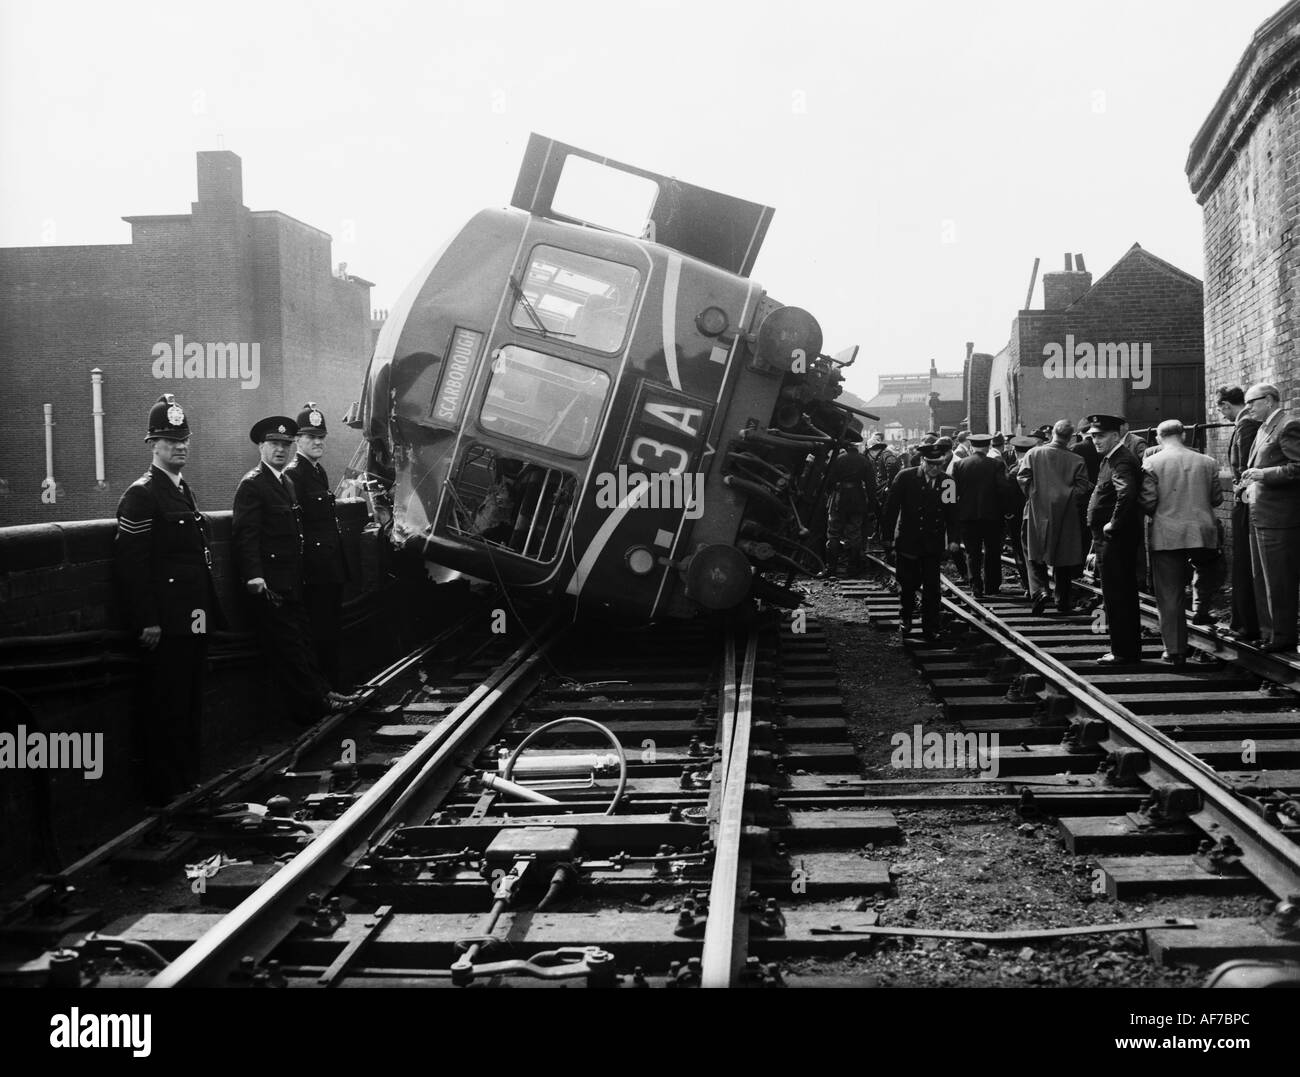 Vintage black and white photograph of a crowd of people including police viewing derailed railway locomotive tipped on its side. - Stock Image